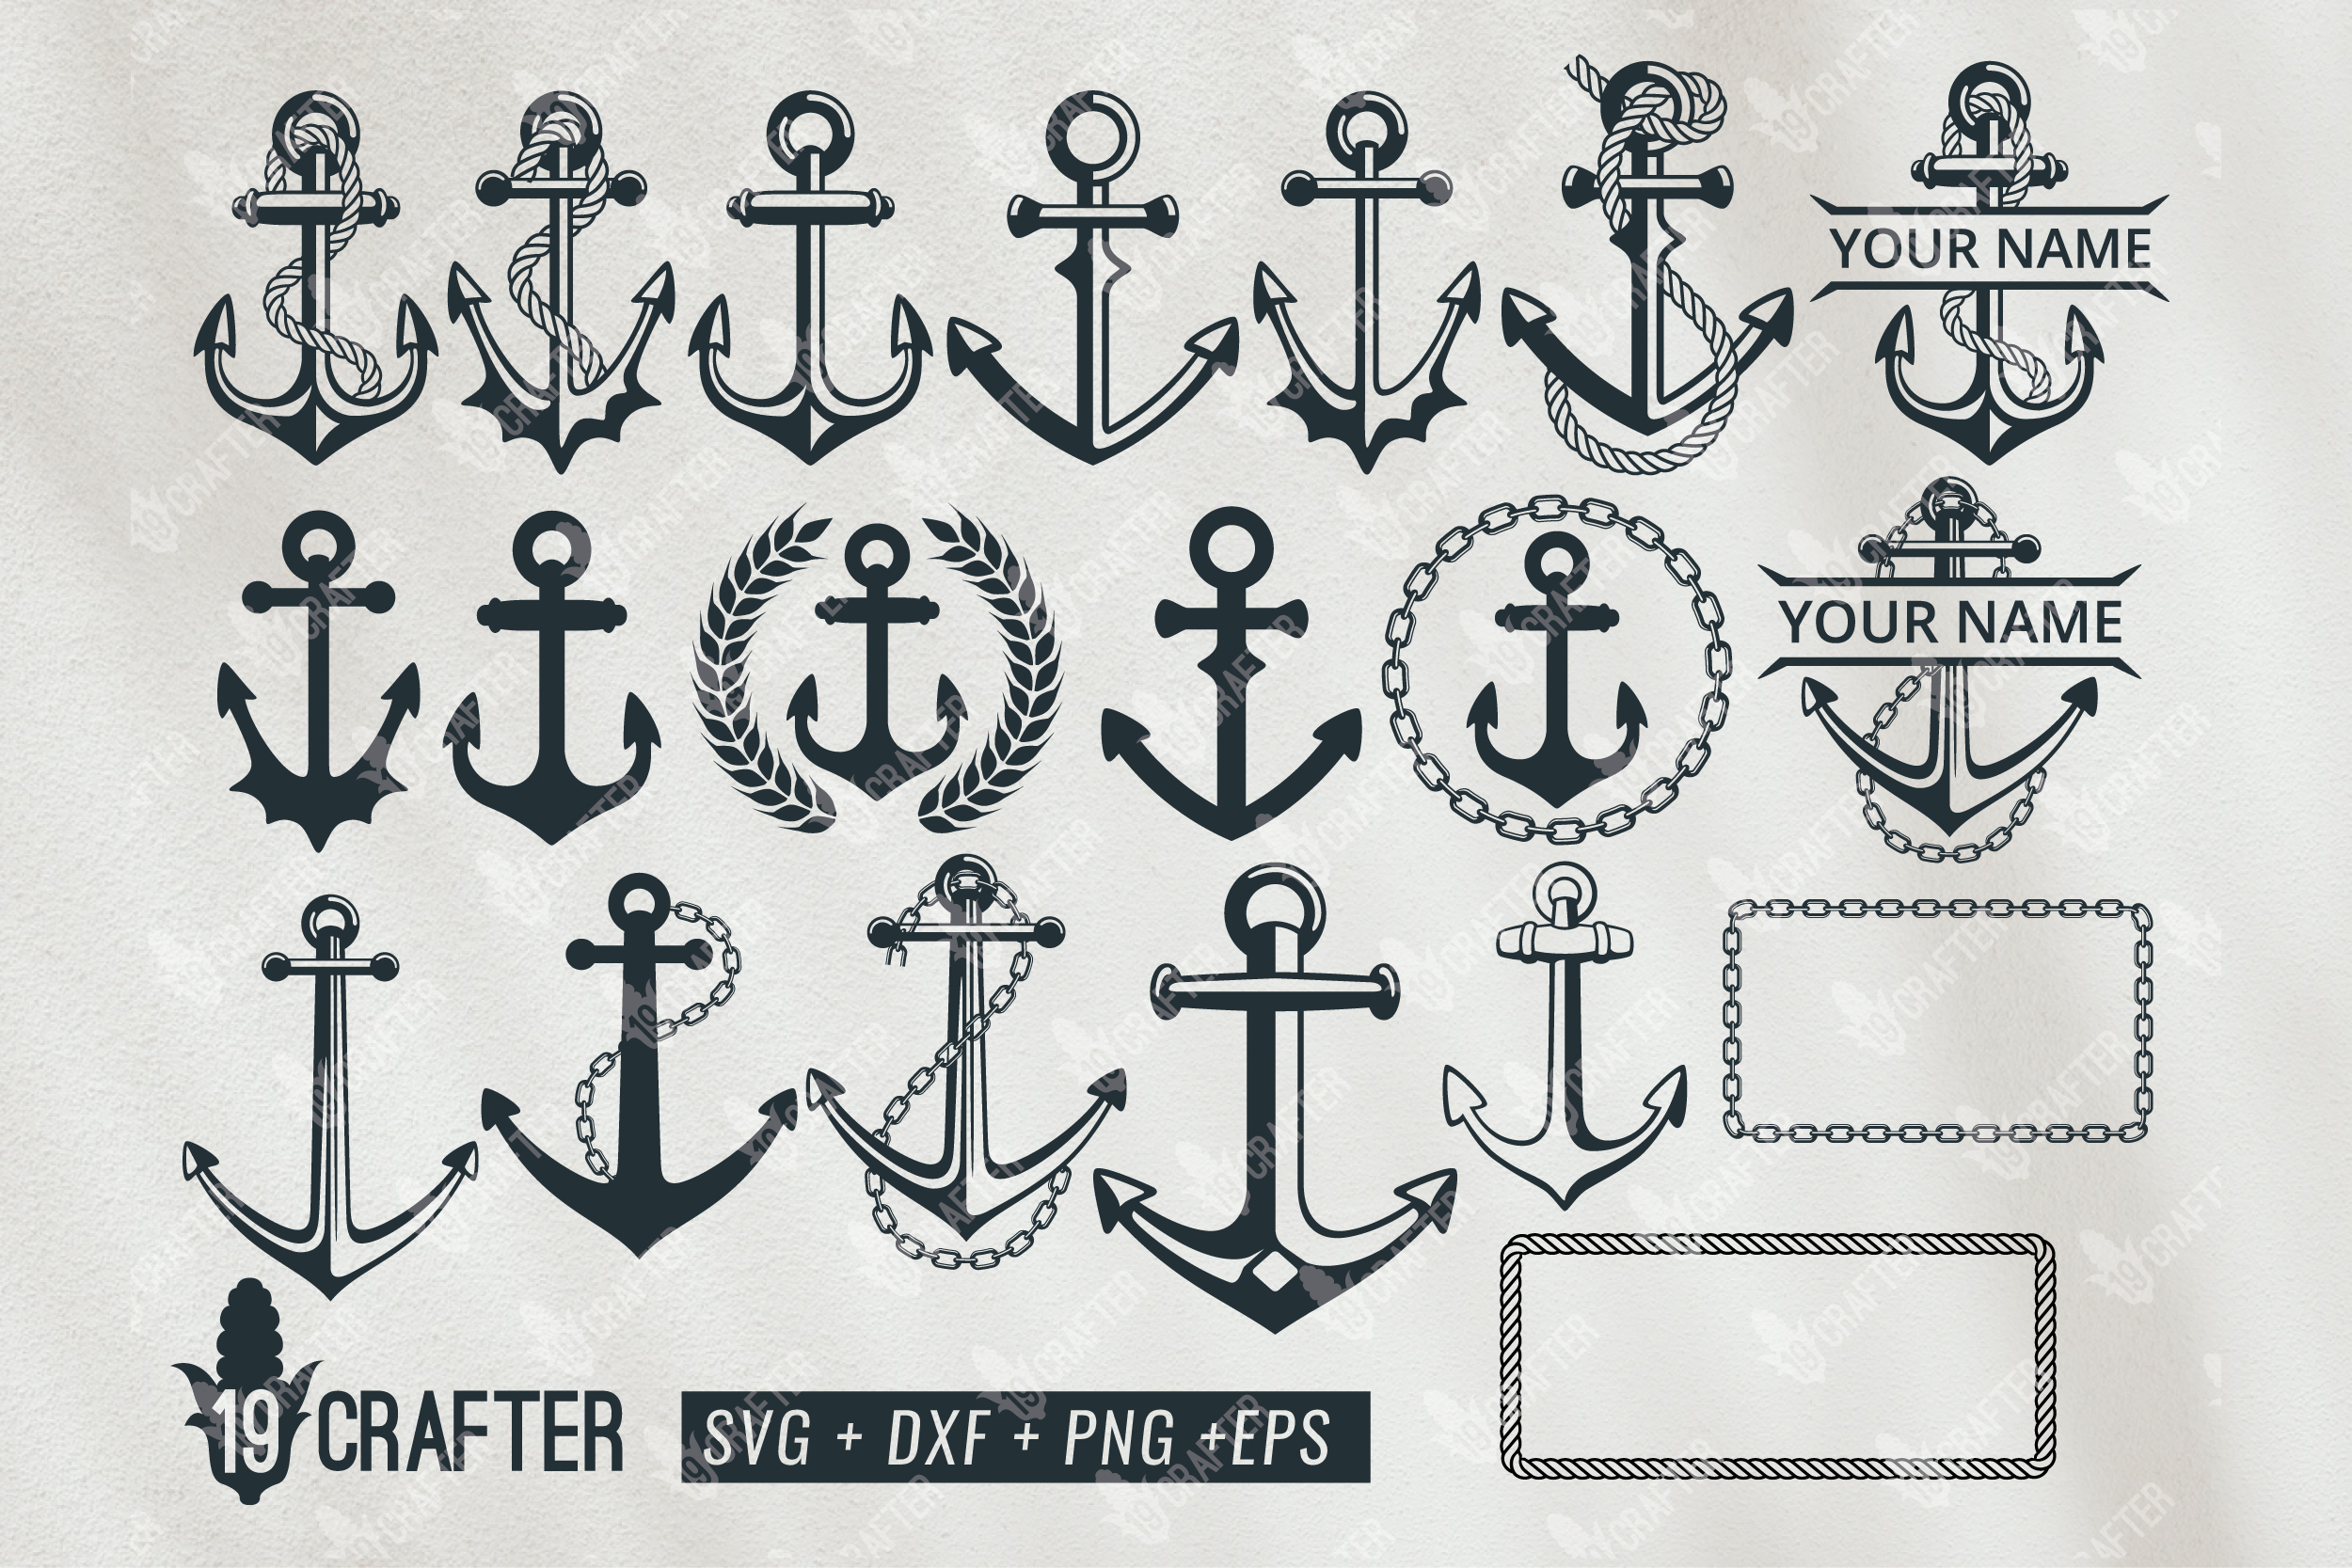 Download Free Anchor Ship Svg Bundle Graphic By Great19 Creative Fabrica for Cricut Explore, Silhouette and other cutting machines.